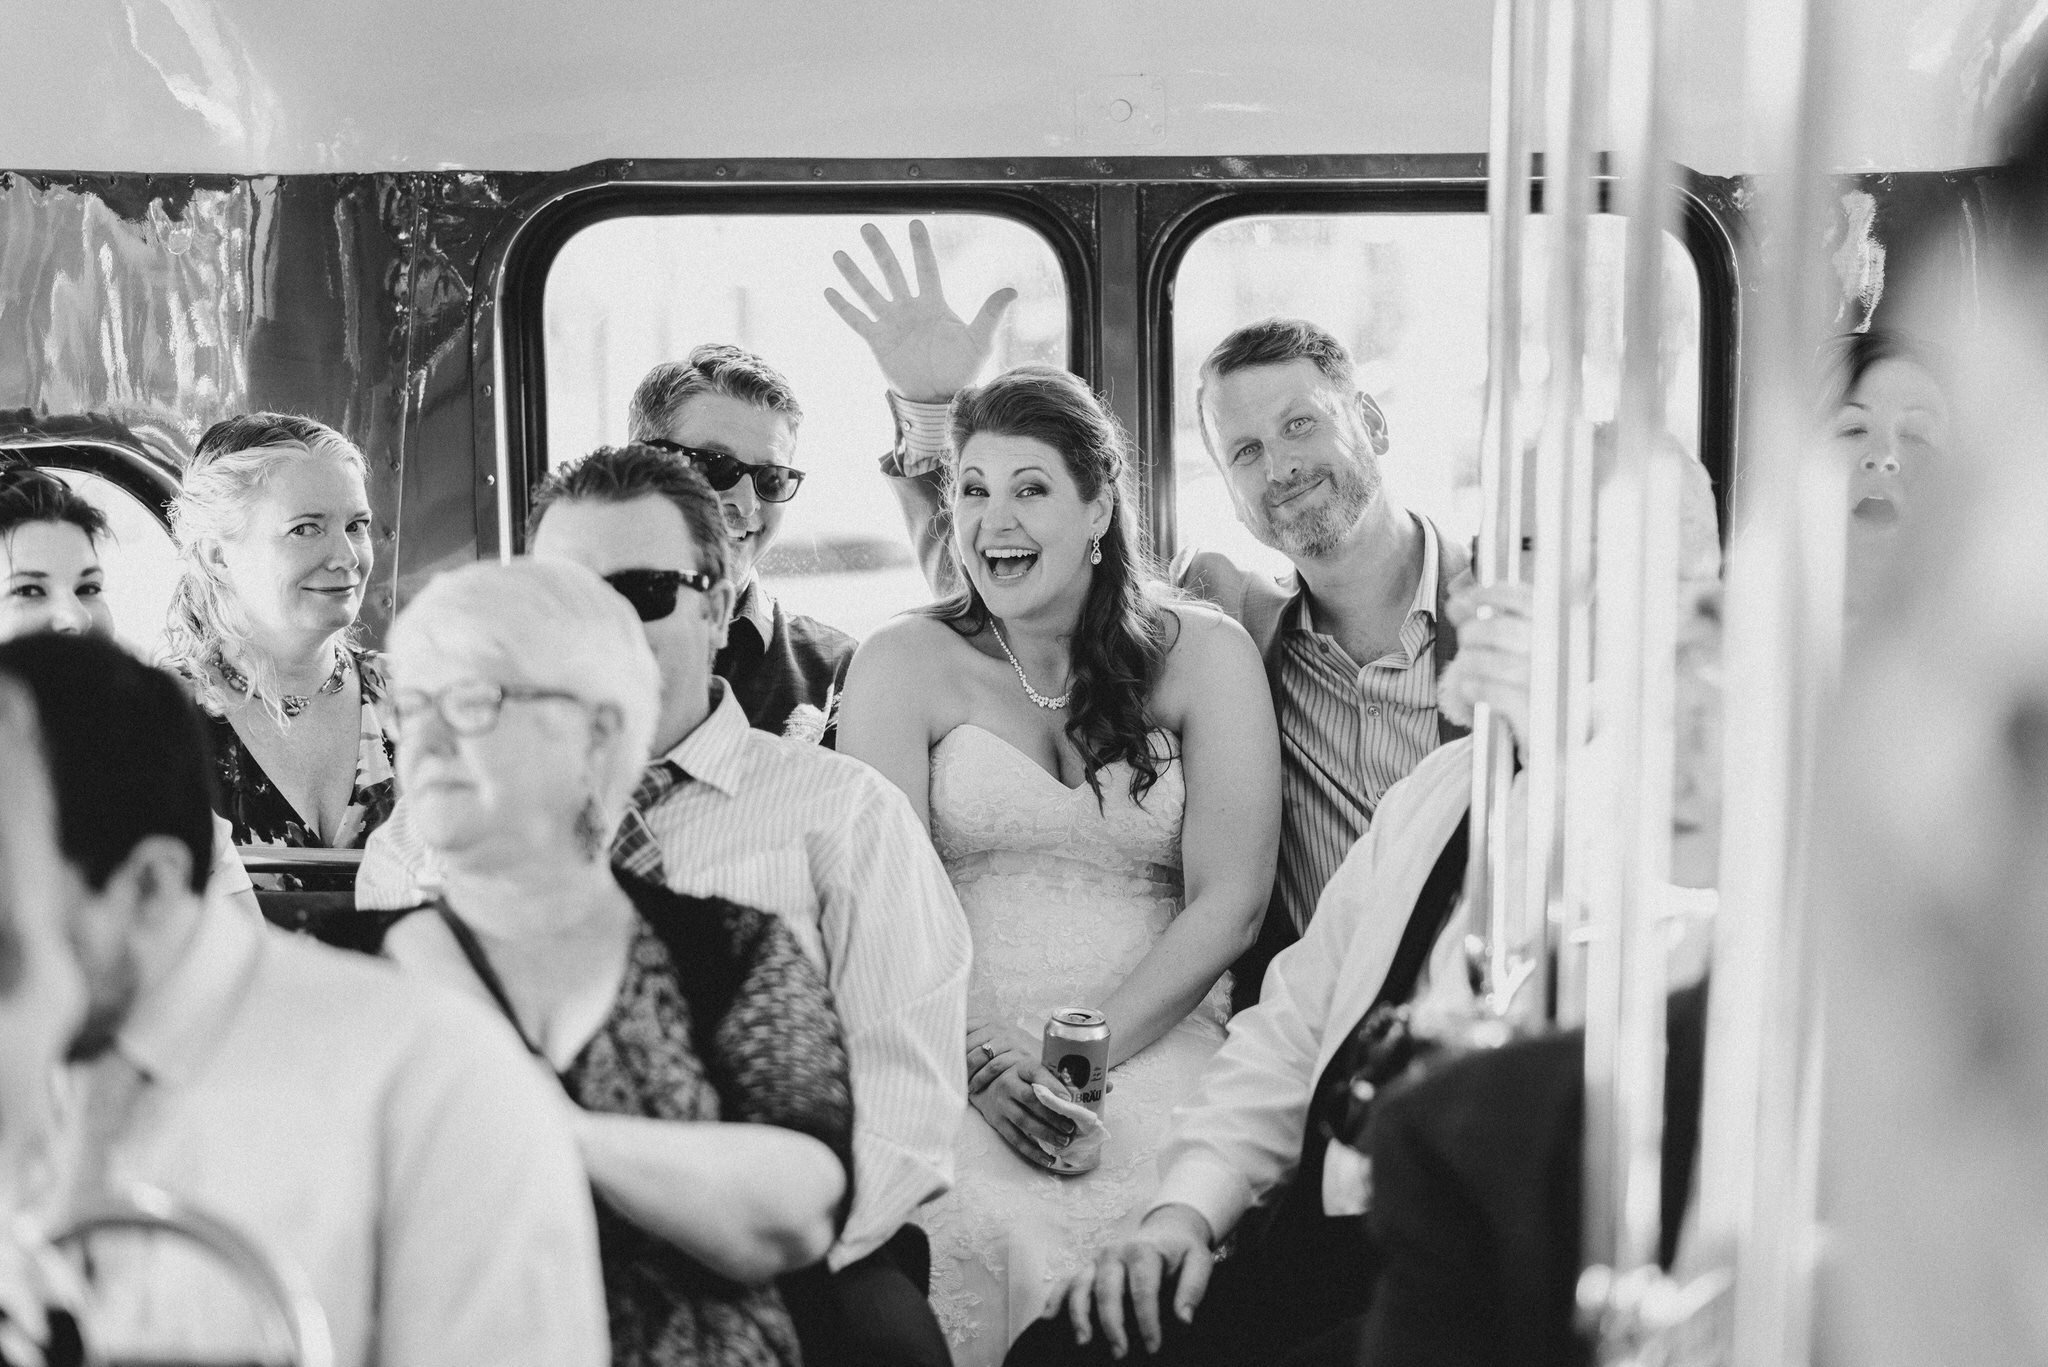 The bride smiles with guests on board after her Vintage Toronto Streetcar Wedding